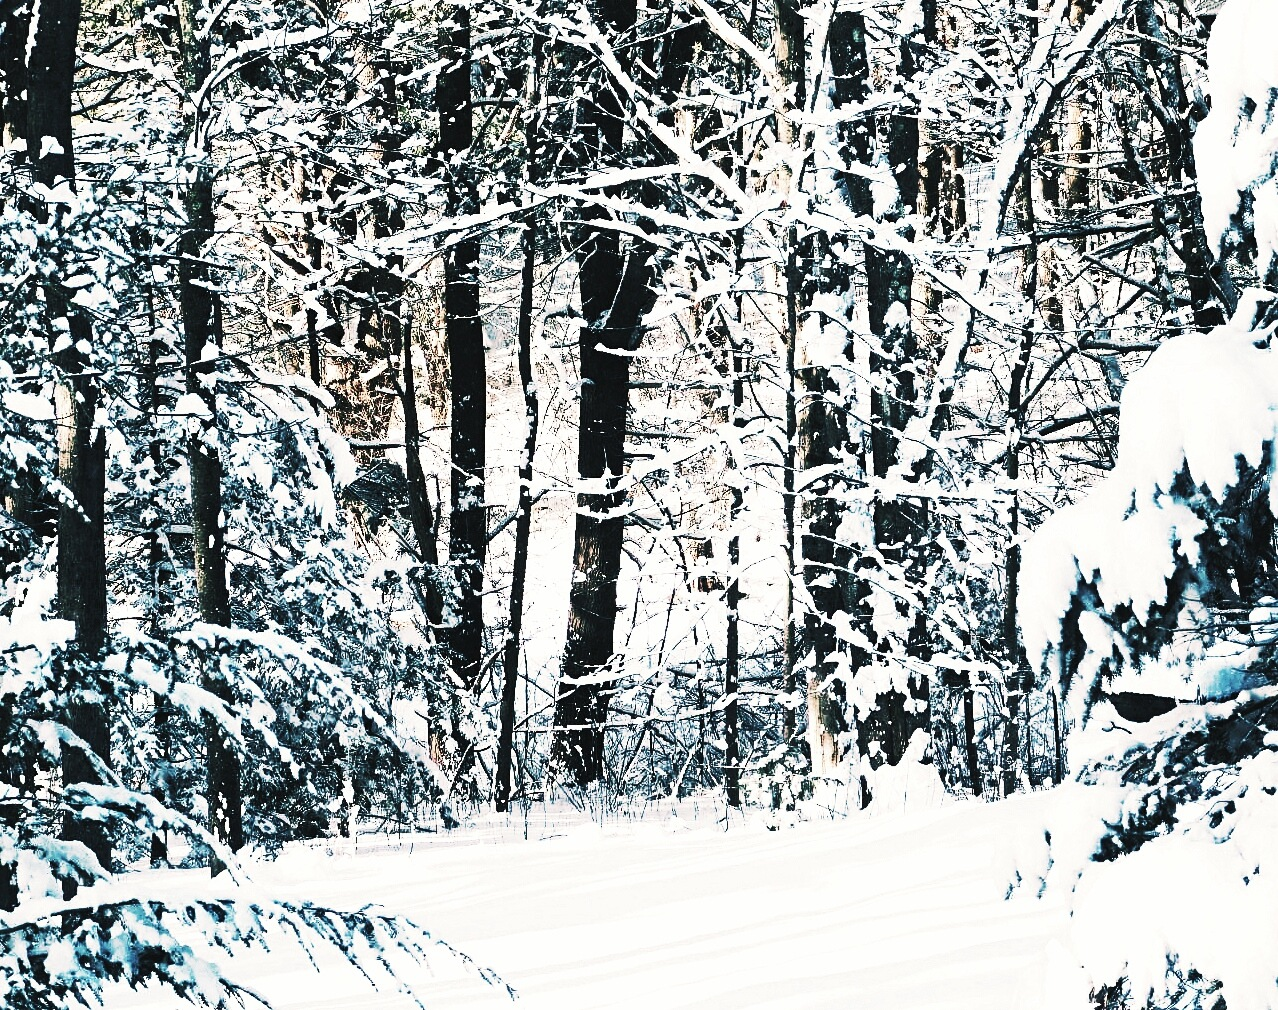 The Soft Side of Winter by Stacey J. Cunningham